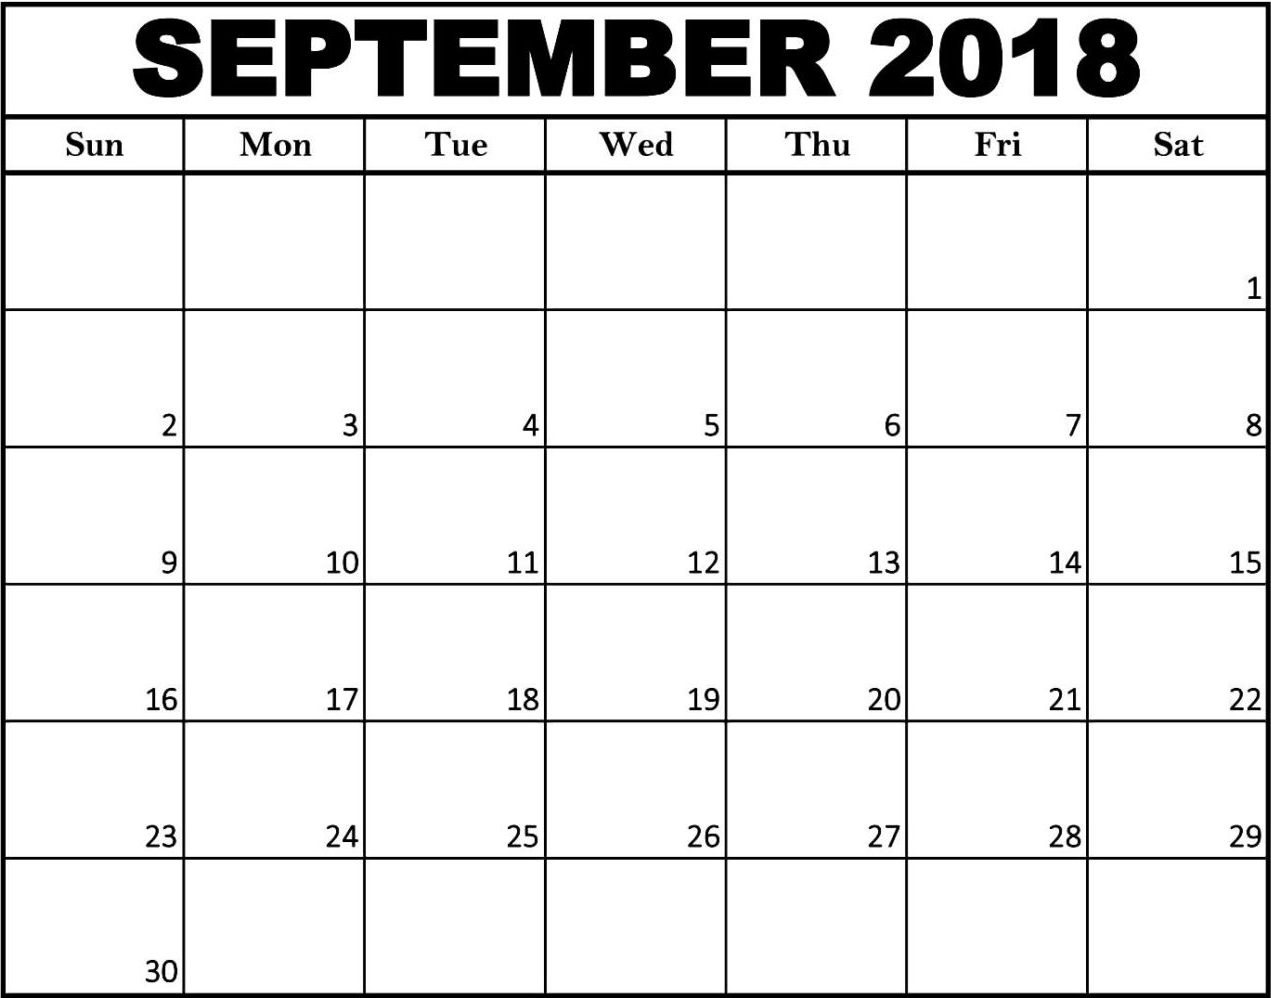 September Calendar 2018 Template in Blank September Calendar Printable